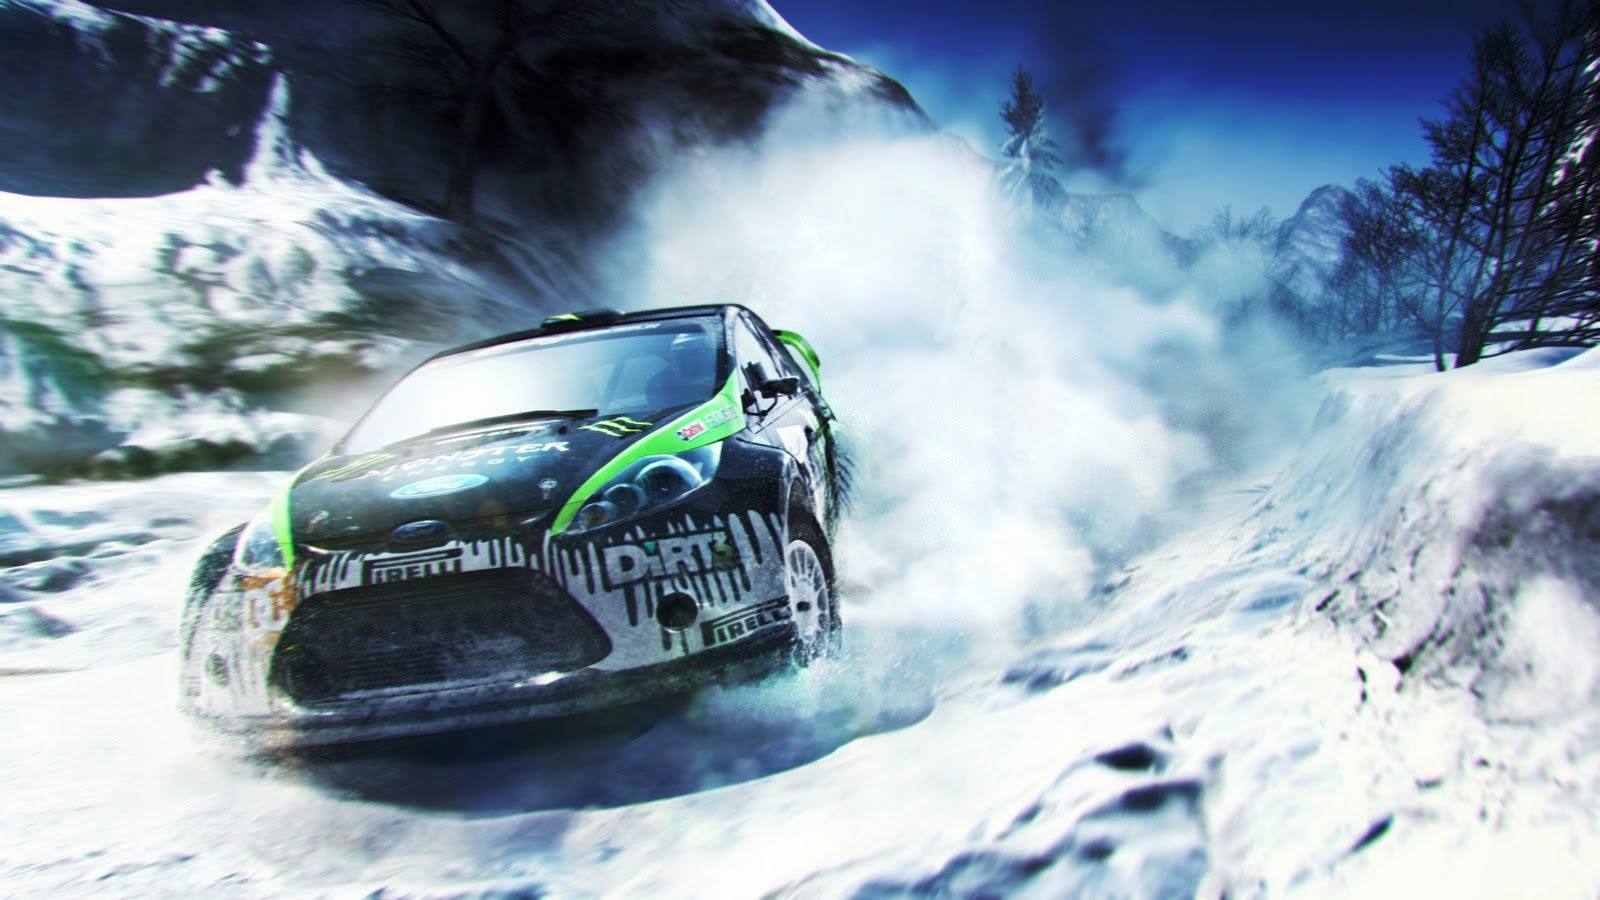 Dirt 3 HD Wallpapers 1900x1080 Download Wallpapers in HD for your 1600x900